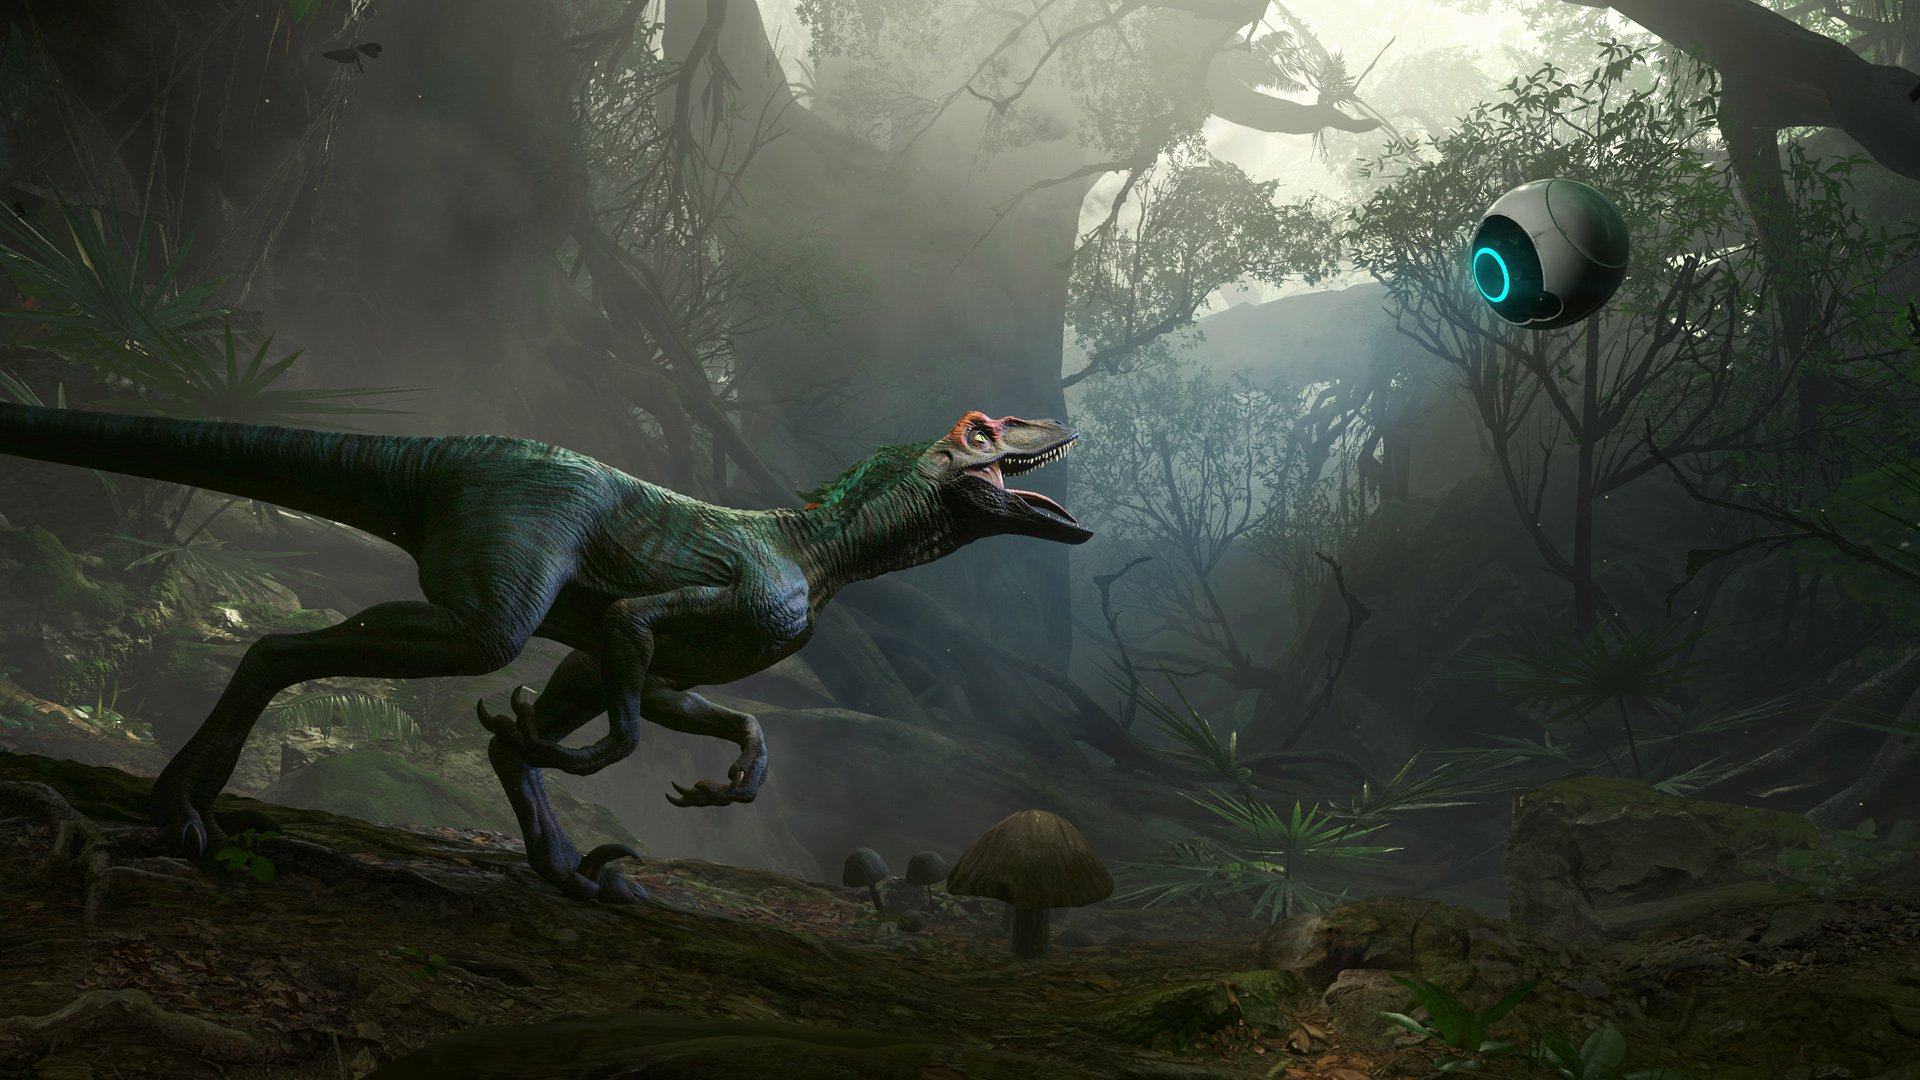 'Robinson: The Journey' Falls Just Short of Dino-Sized Potential